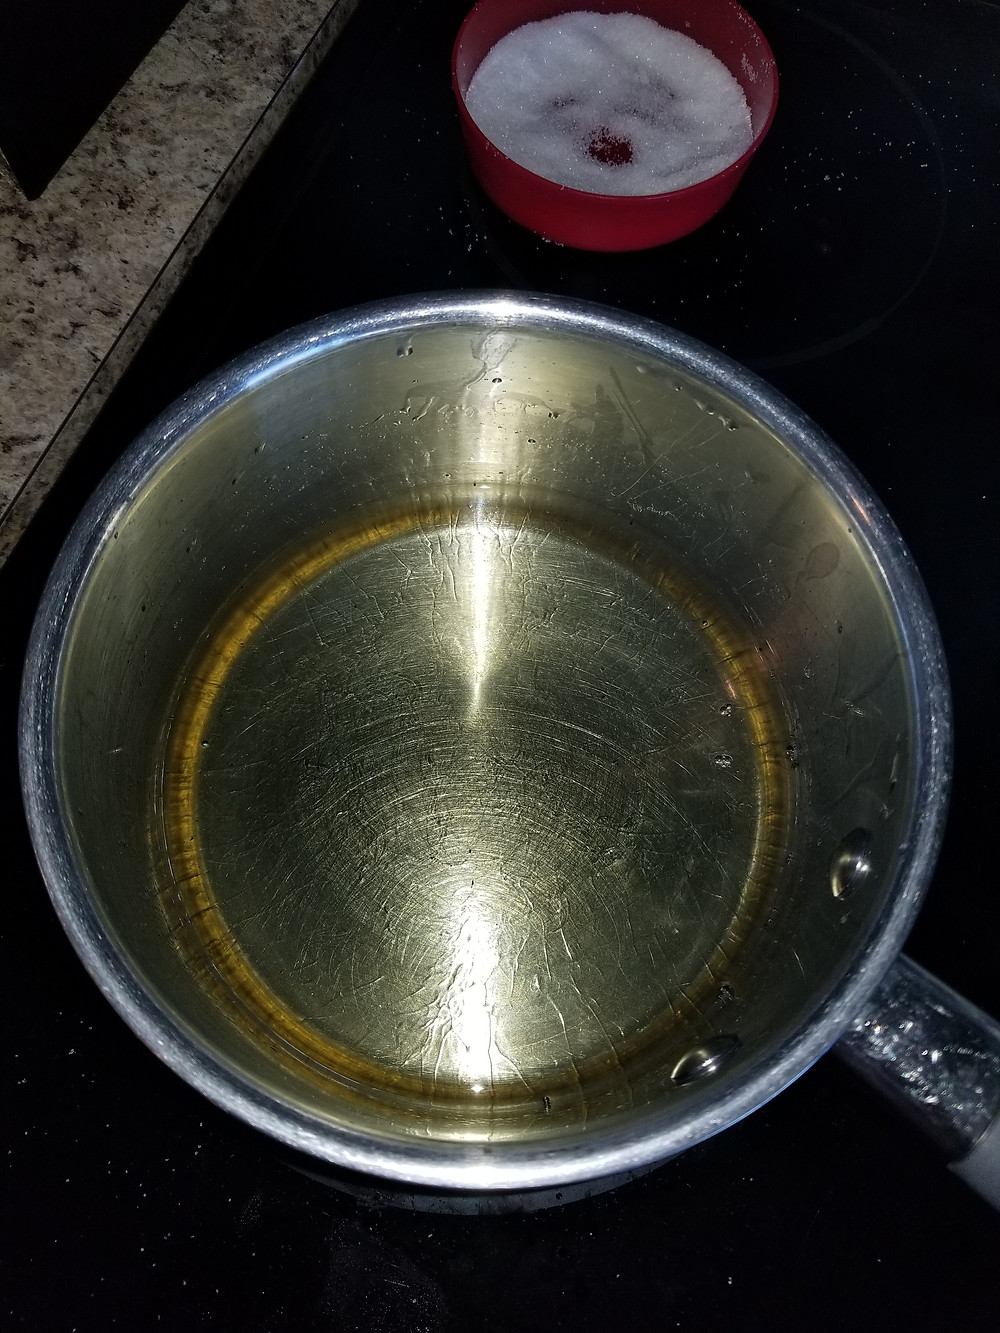 In the front, a sauce pan full of oil to fry the doughnuts. In the back, small red bowl with sugar.